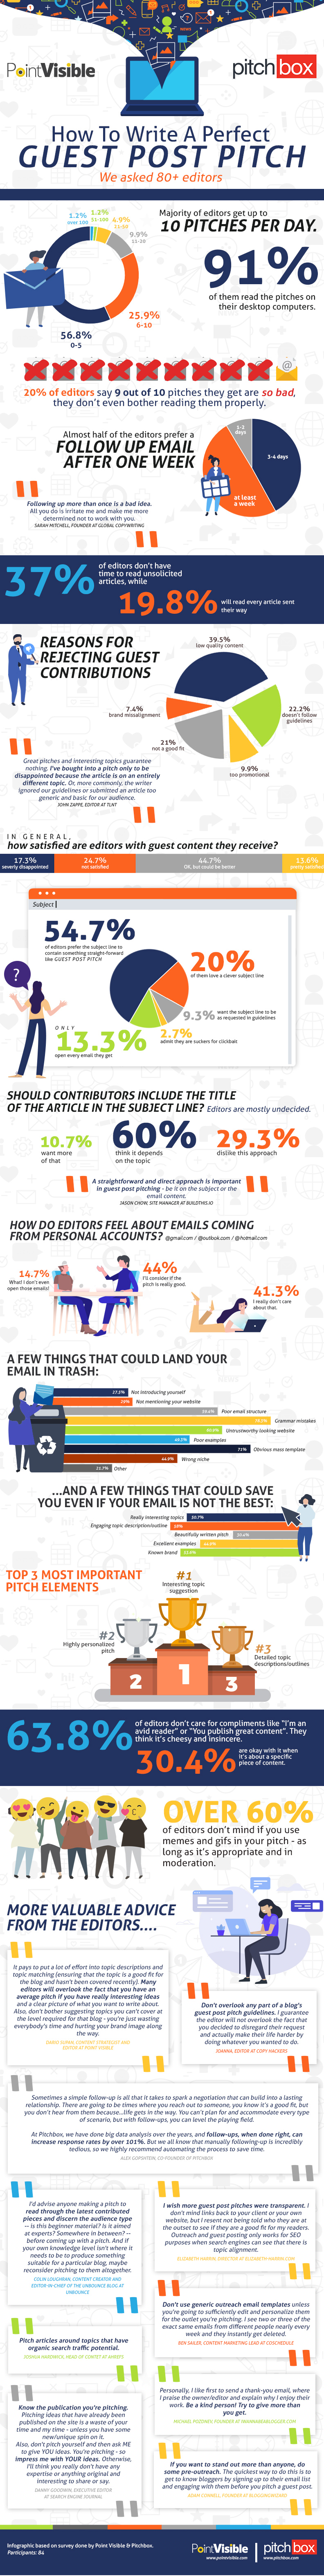 Guest post pitch statistics [Infographic]